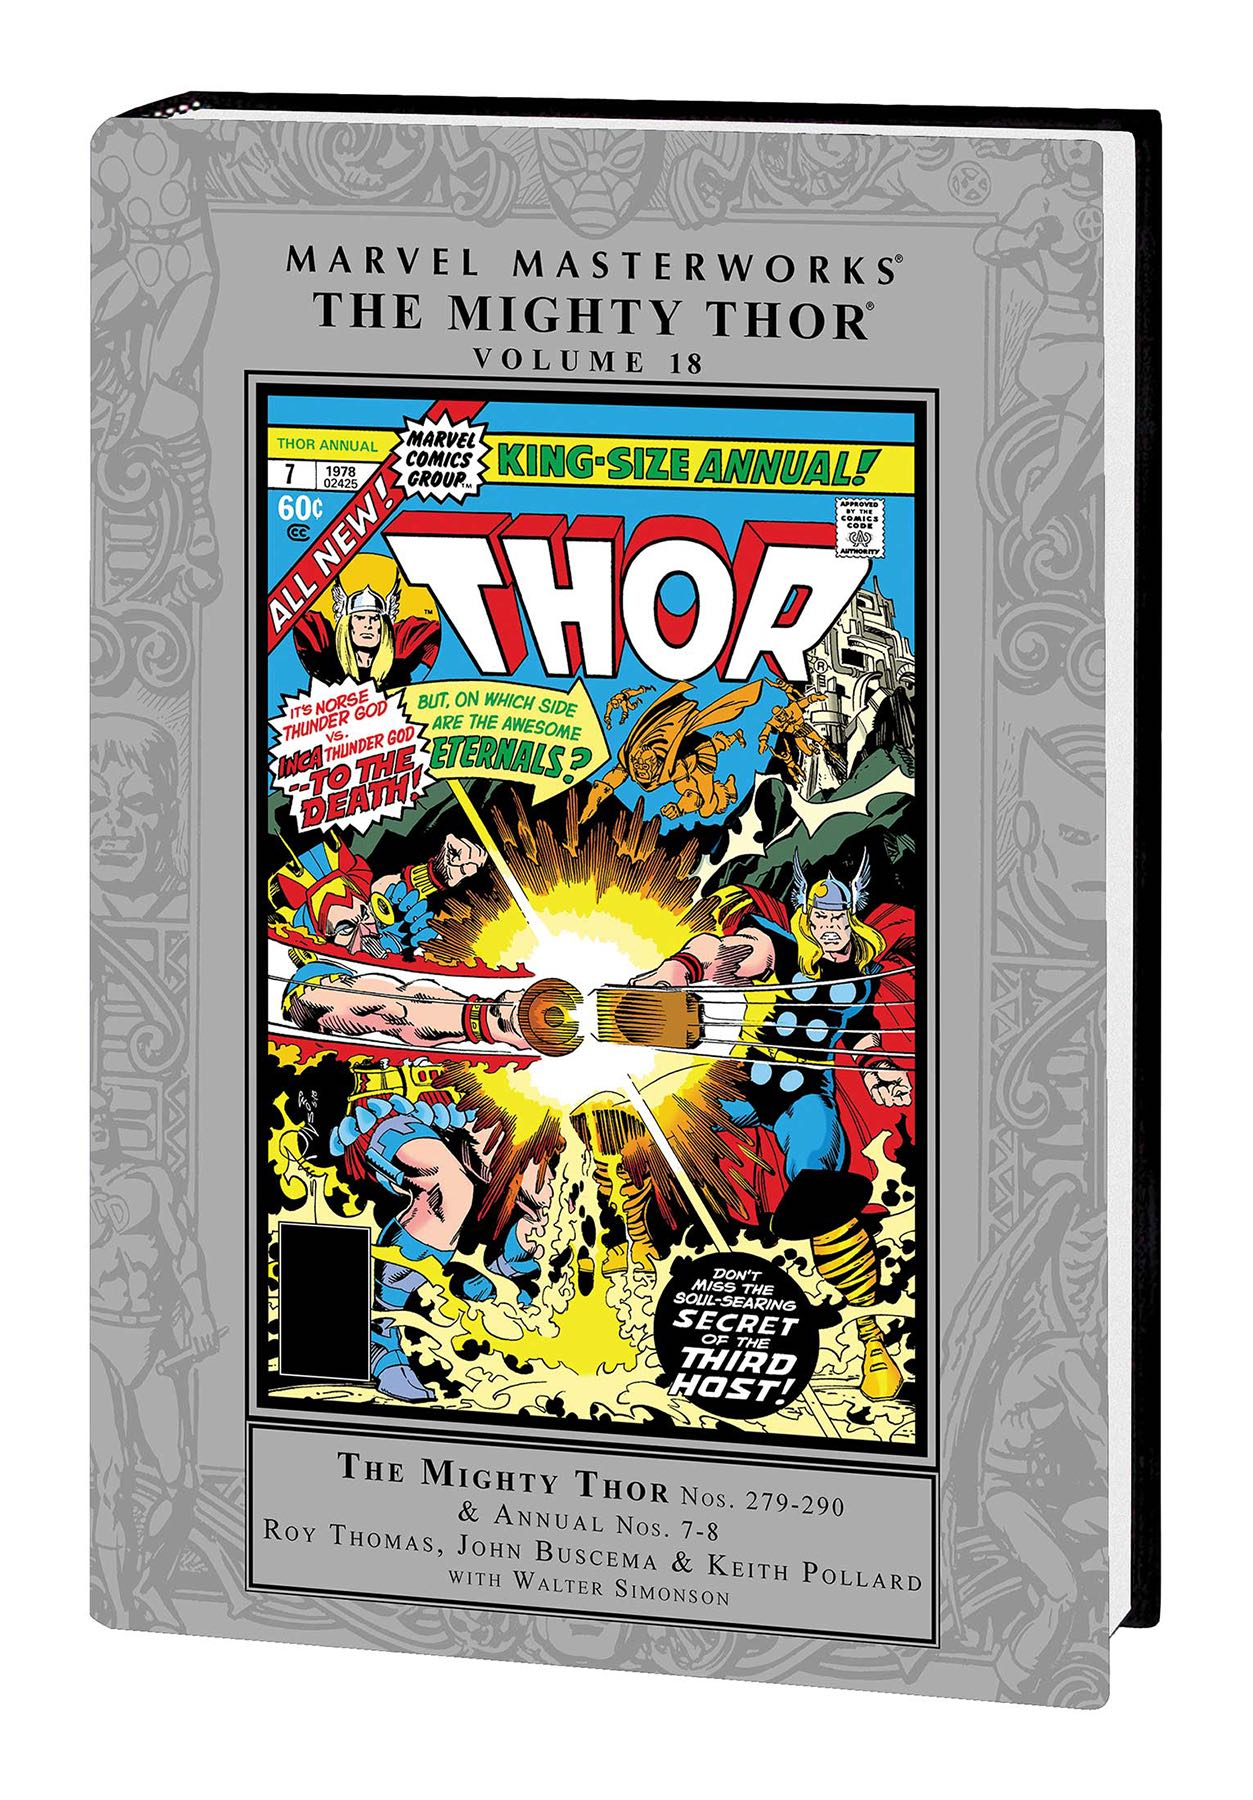 The Mighty Thor Vol  18 (Marvel Masterworks) | Fresh Comics